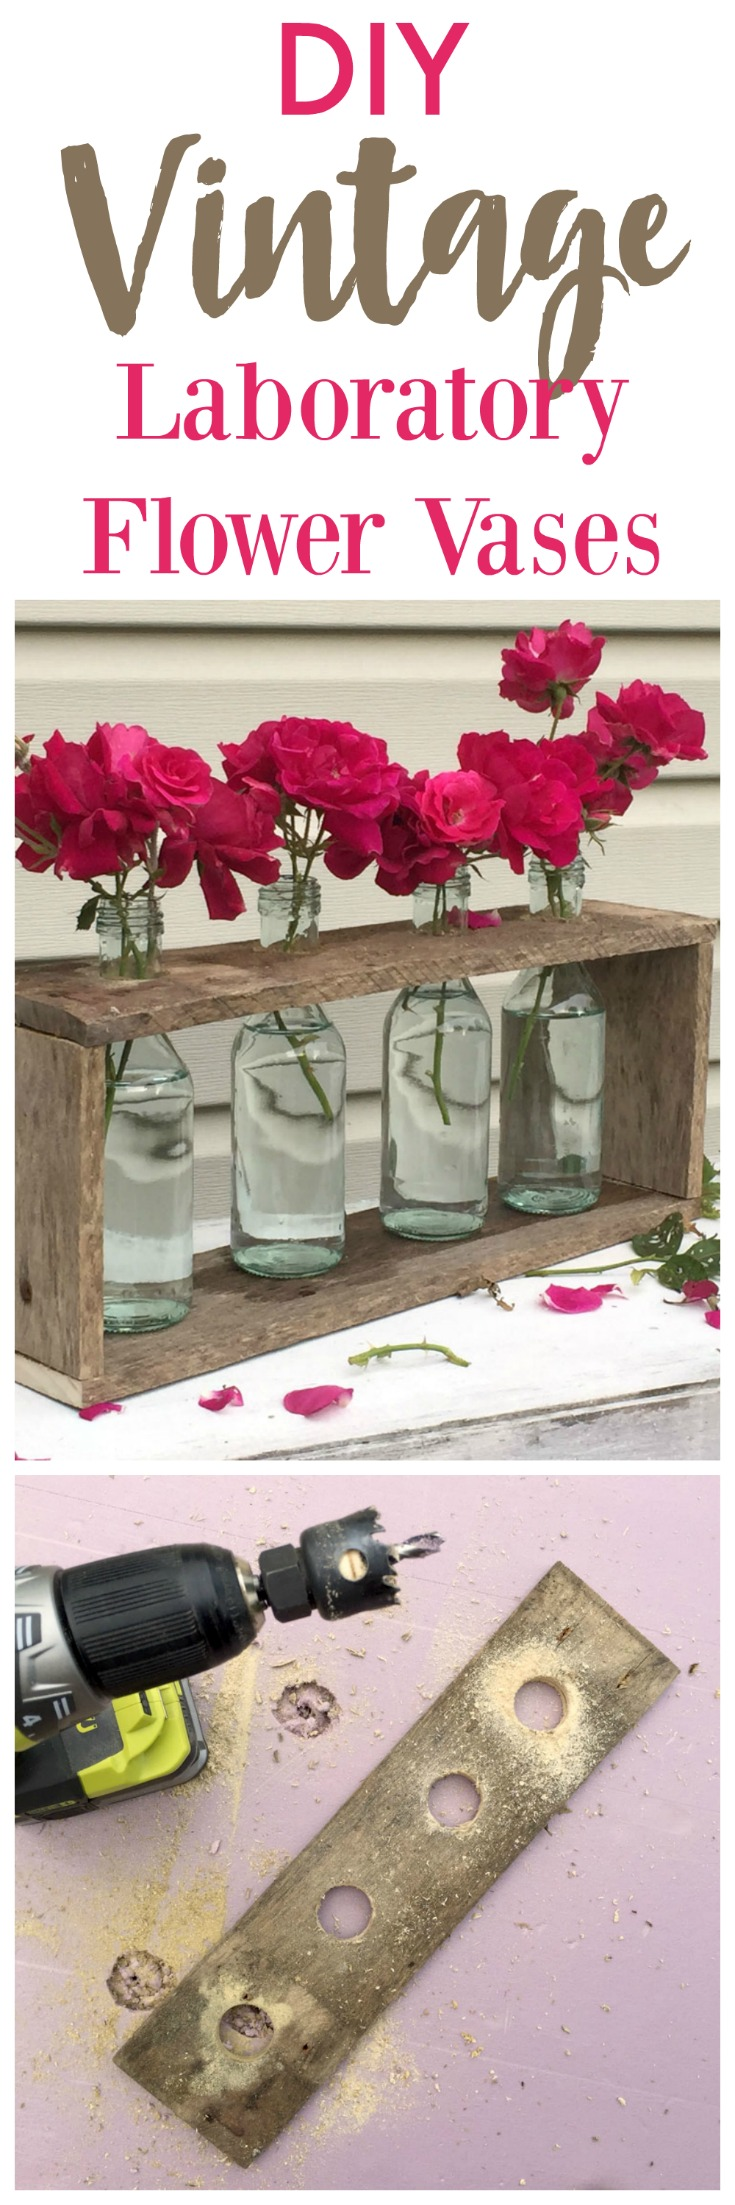 DIY Vintage Laboratory Flower Vases in a wooden rack